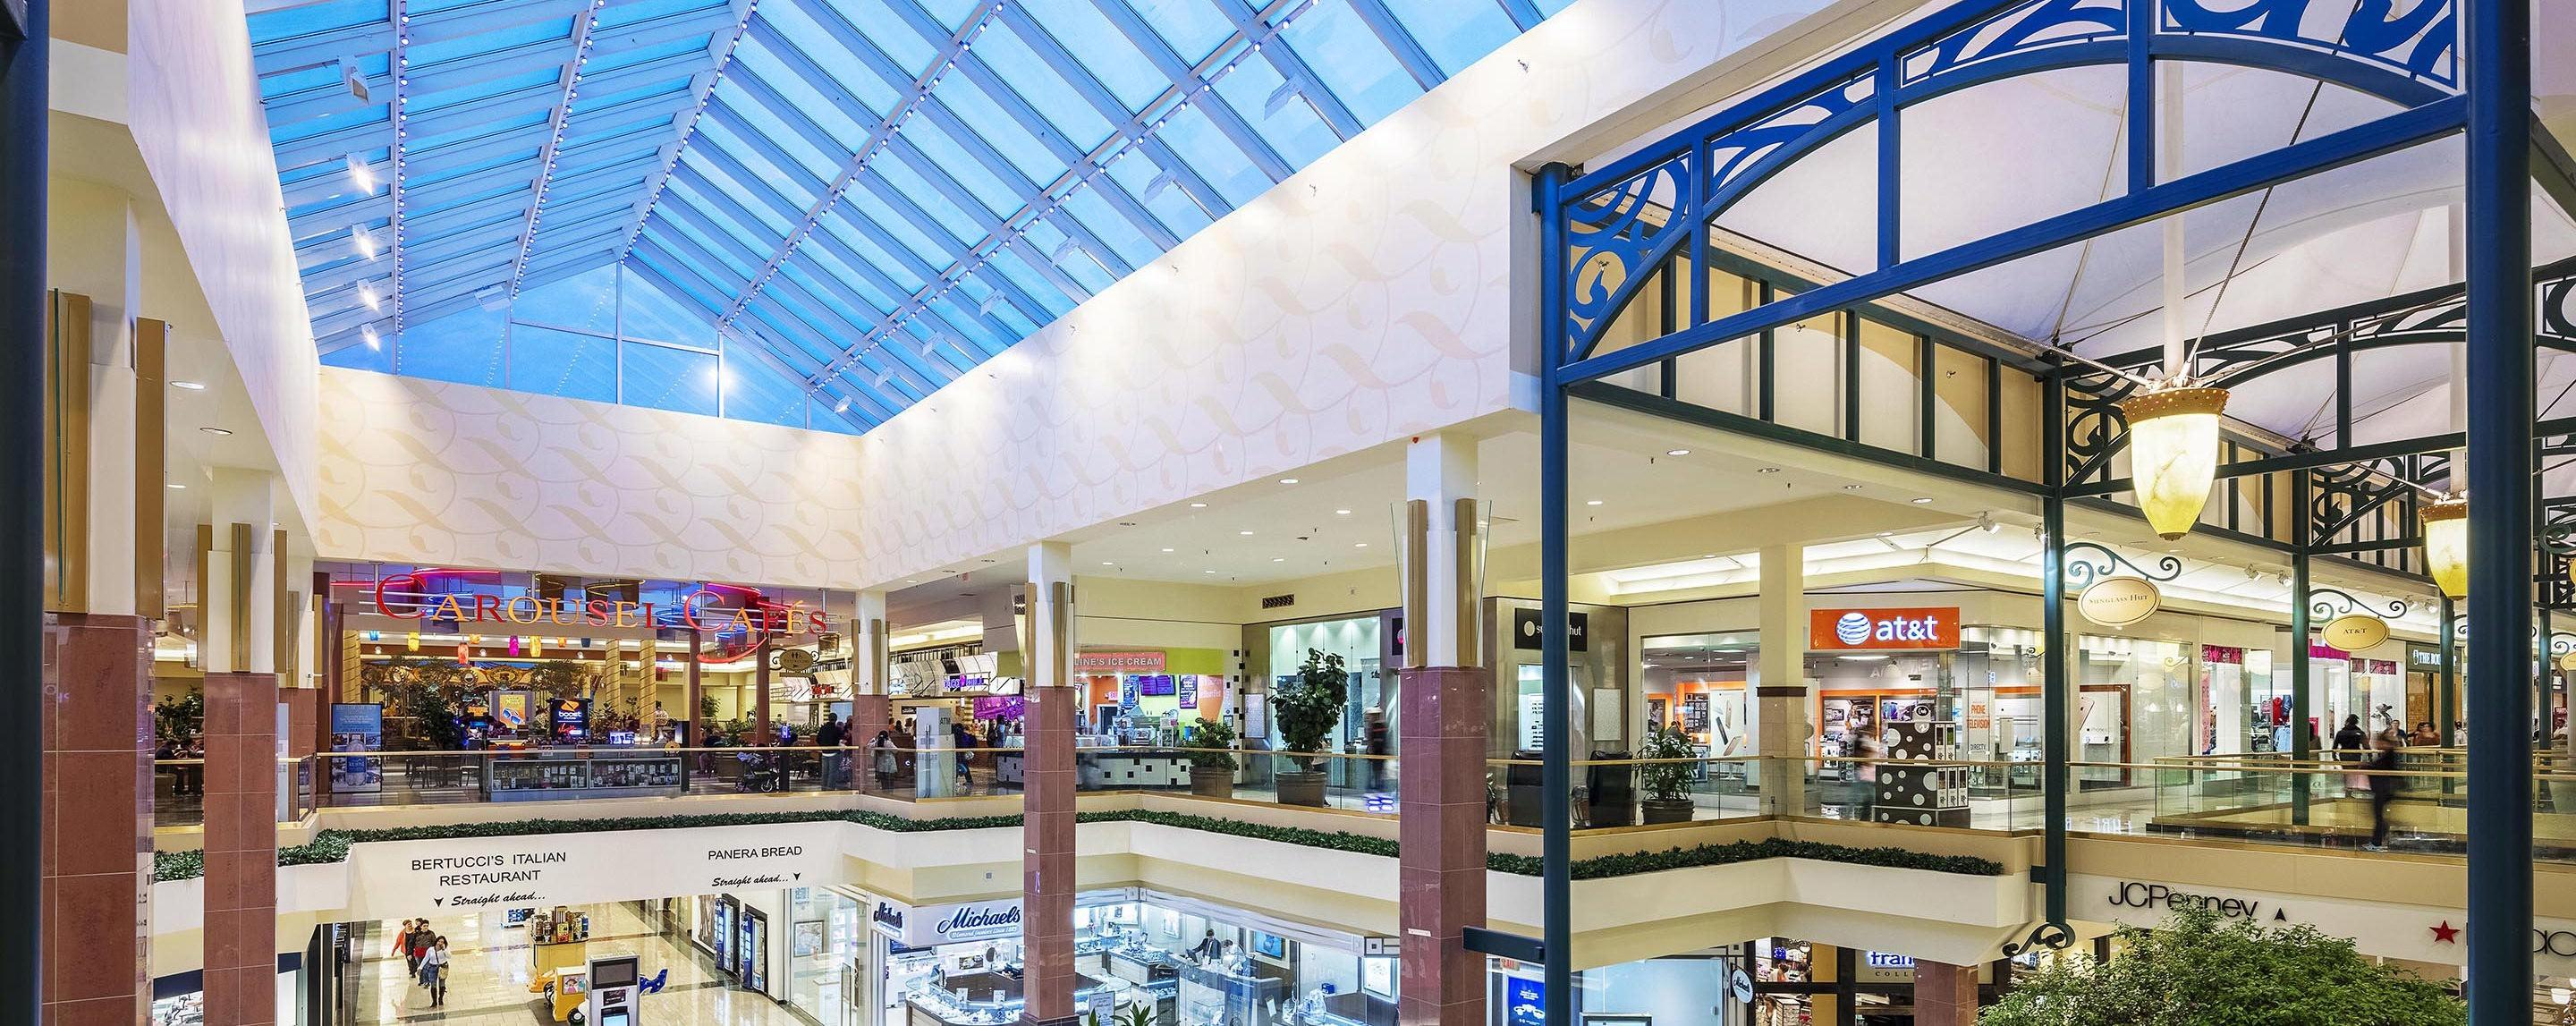 The Shoppes at Buckland Hills image 2